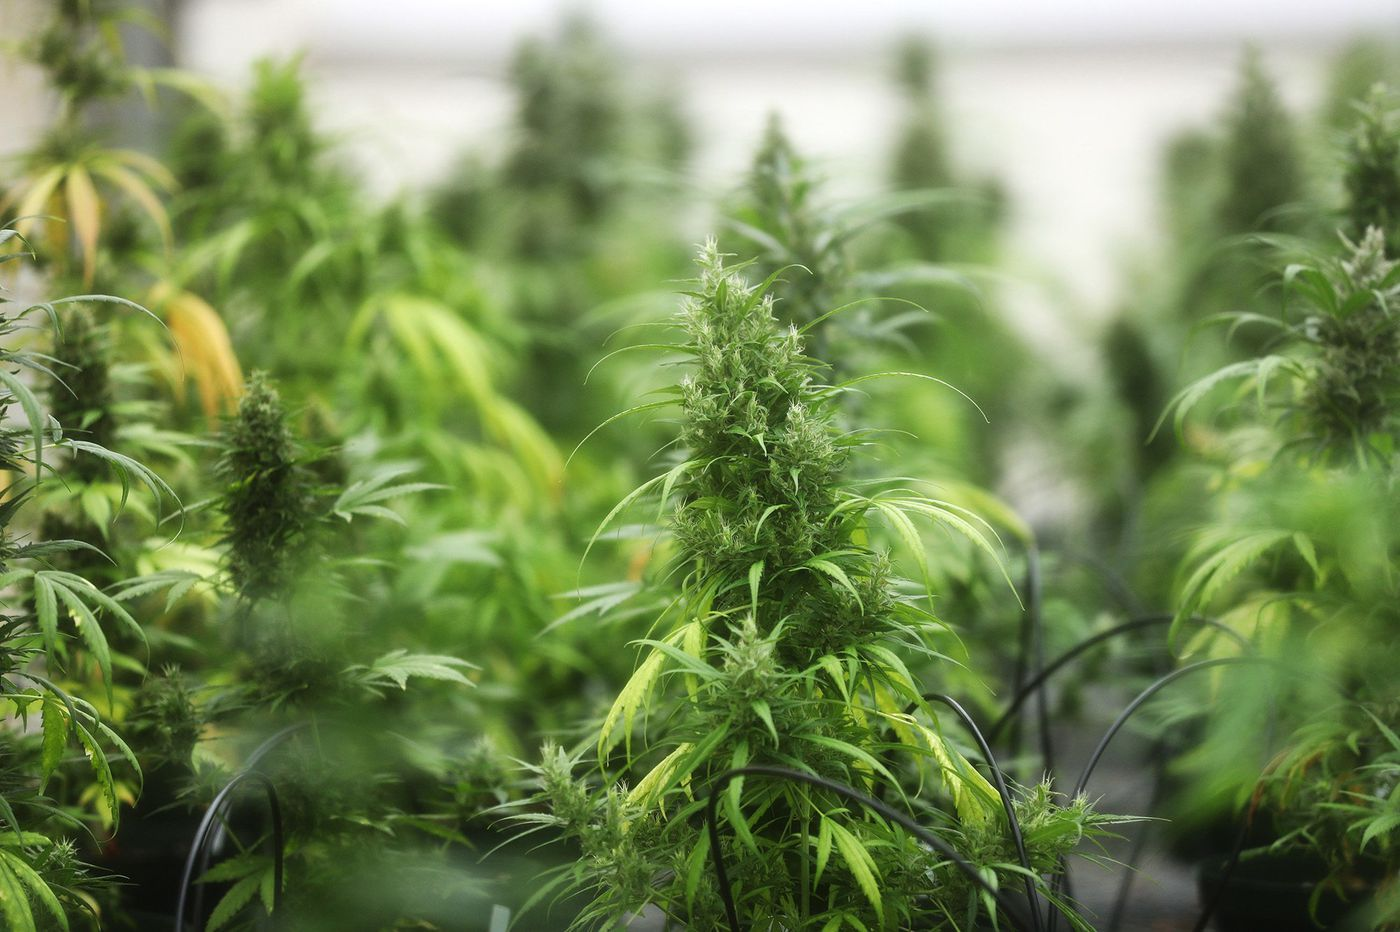 Aspiring hemp farmers and processors can now apply to produce it in the Garden State